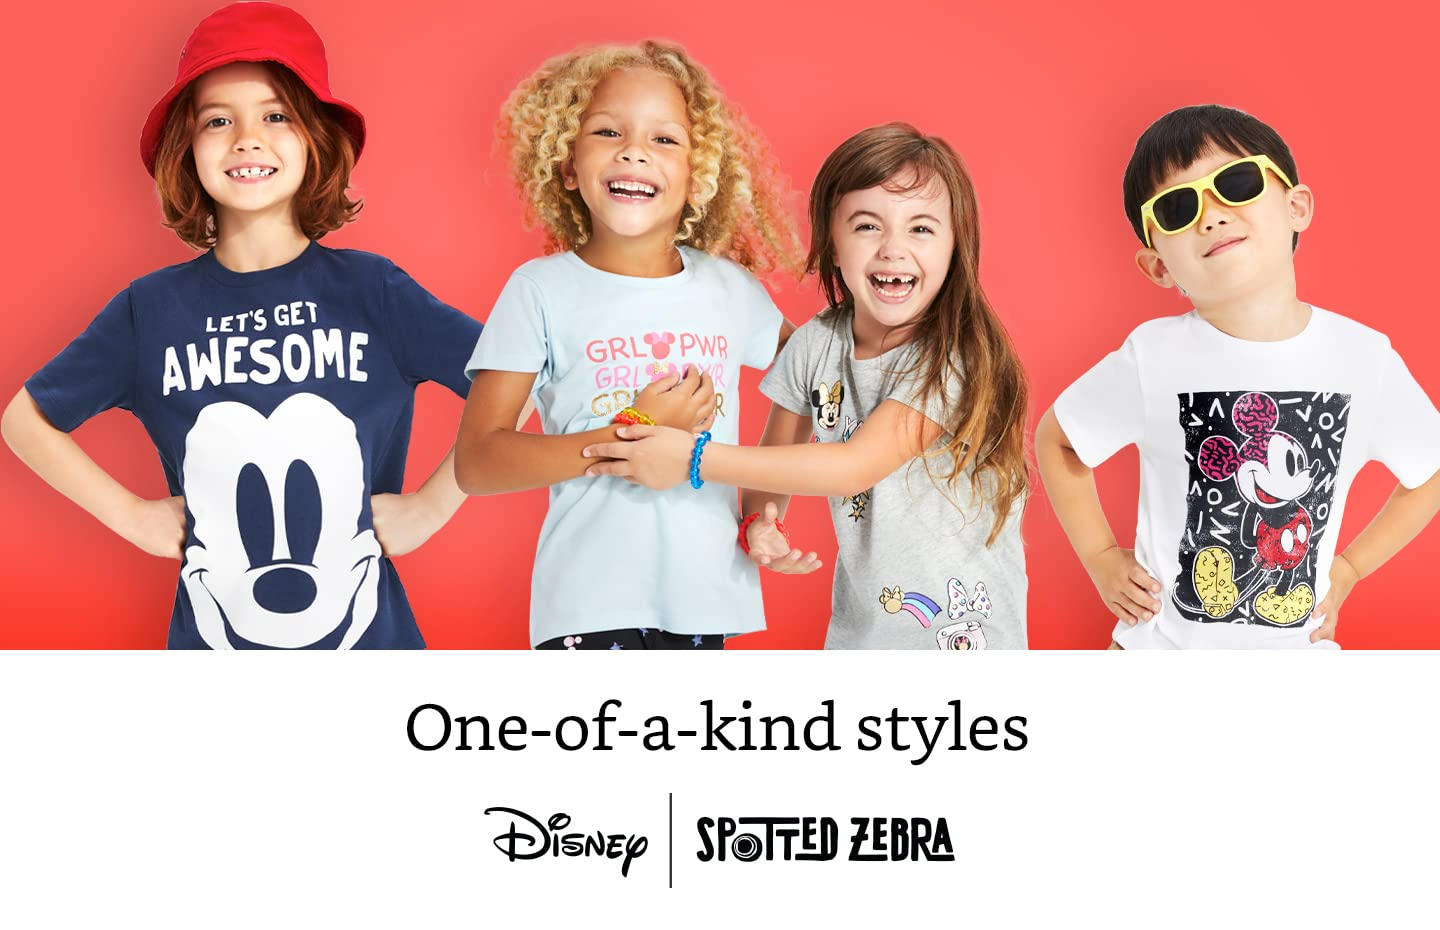 One-of-a-kind styles Disney Spotted Zebra